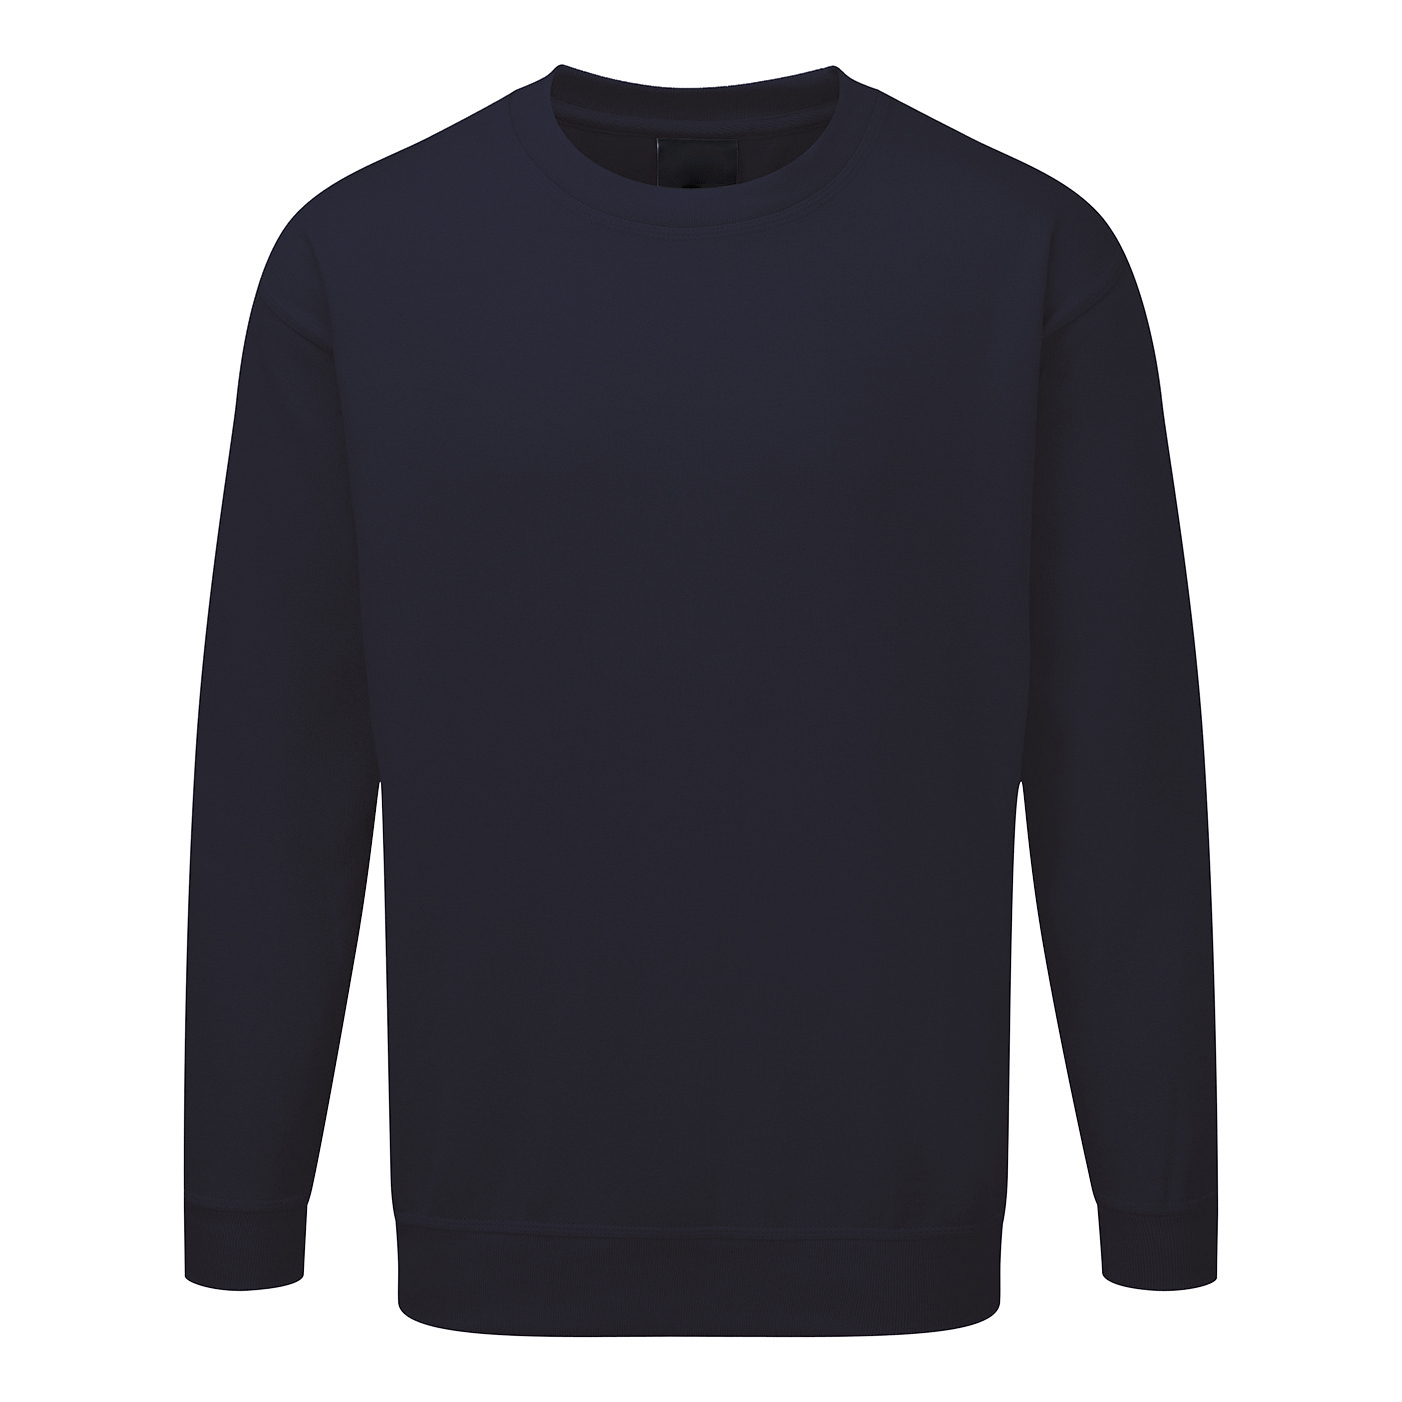 Click Workwear Sweatshirt Polycotton 300gsm Medium Navy Blue Ref CLPCSNM *1-3 Days Lead Time*